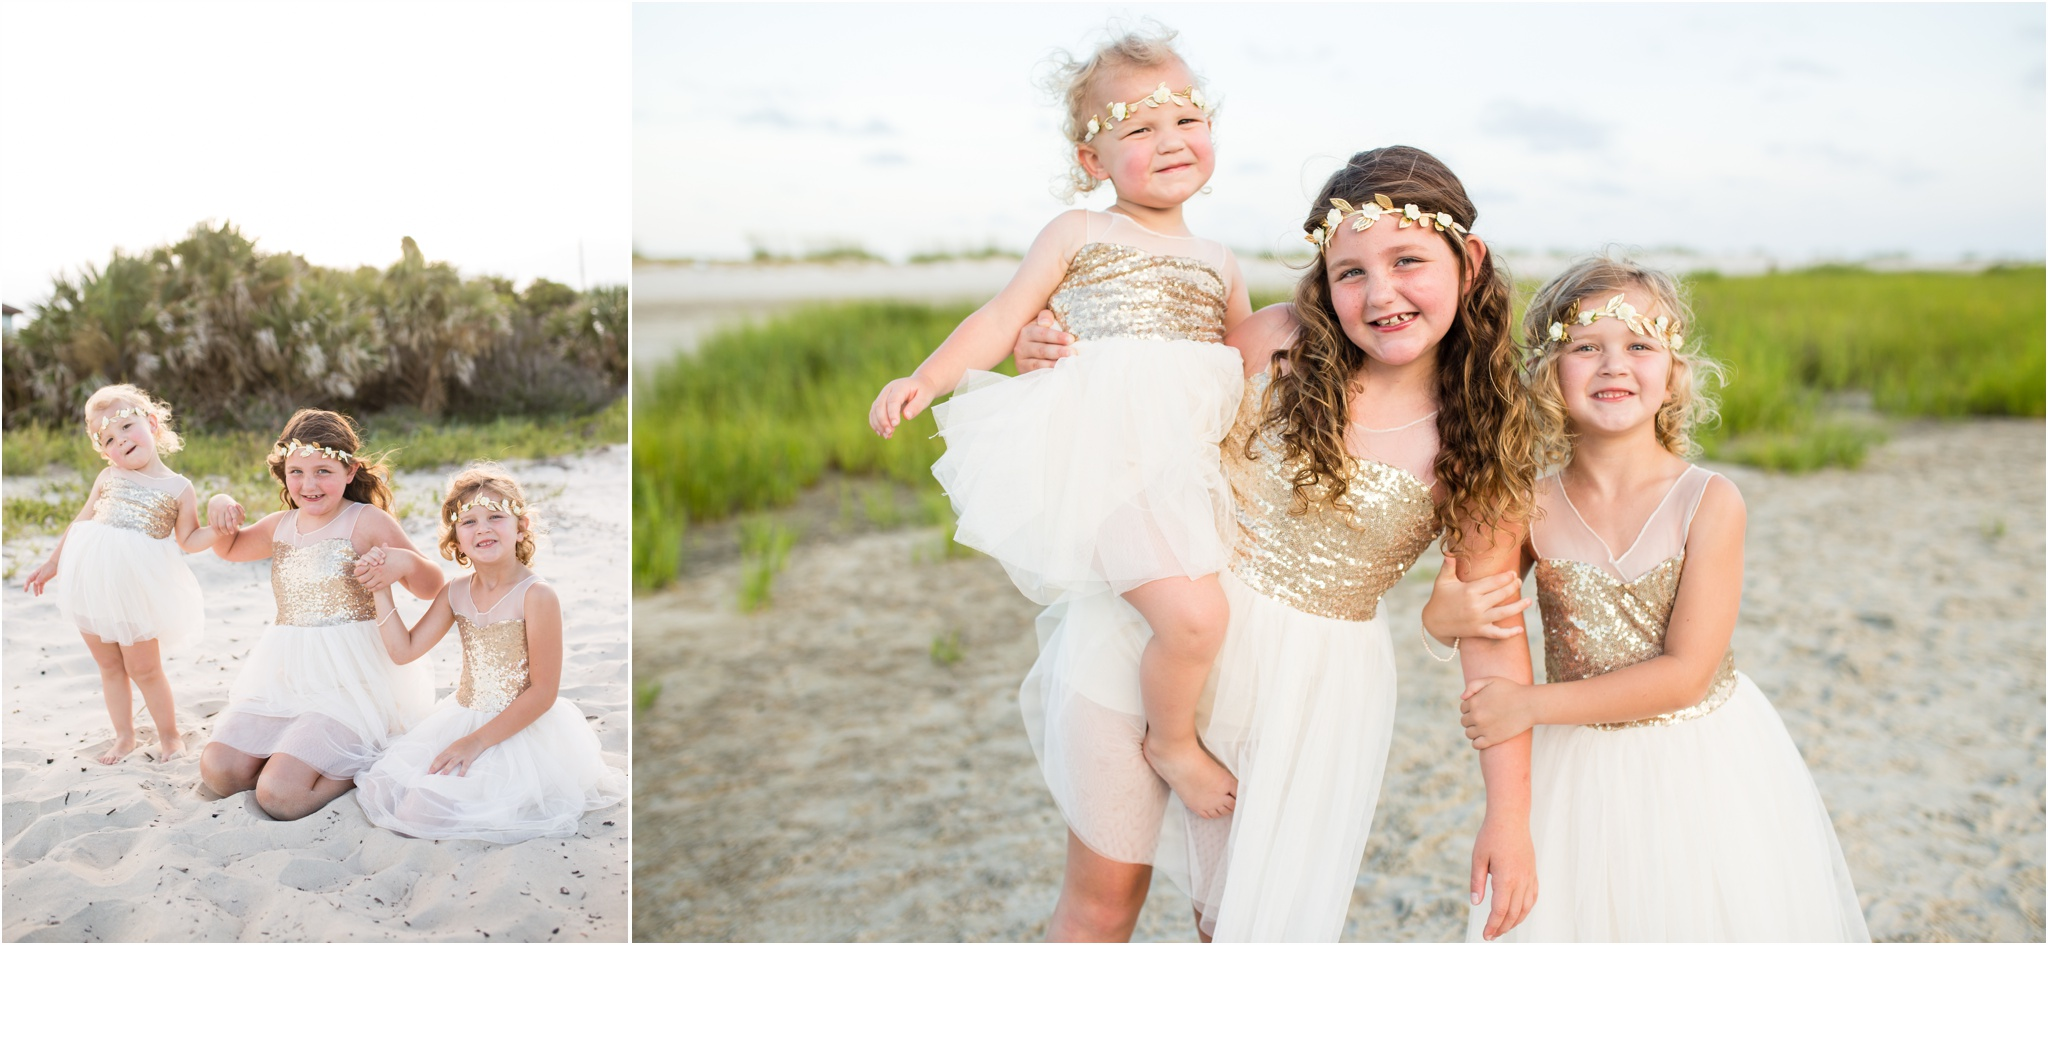 Rainey_Gregg_Photography_St._Simons_Island_Georgia_California_Wedding_Portrait_Photography_1425.jpg